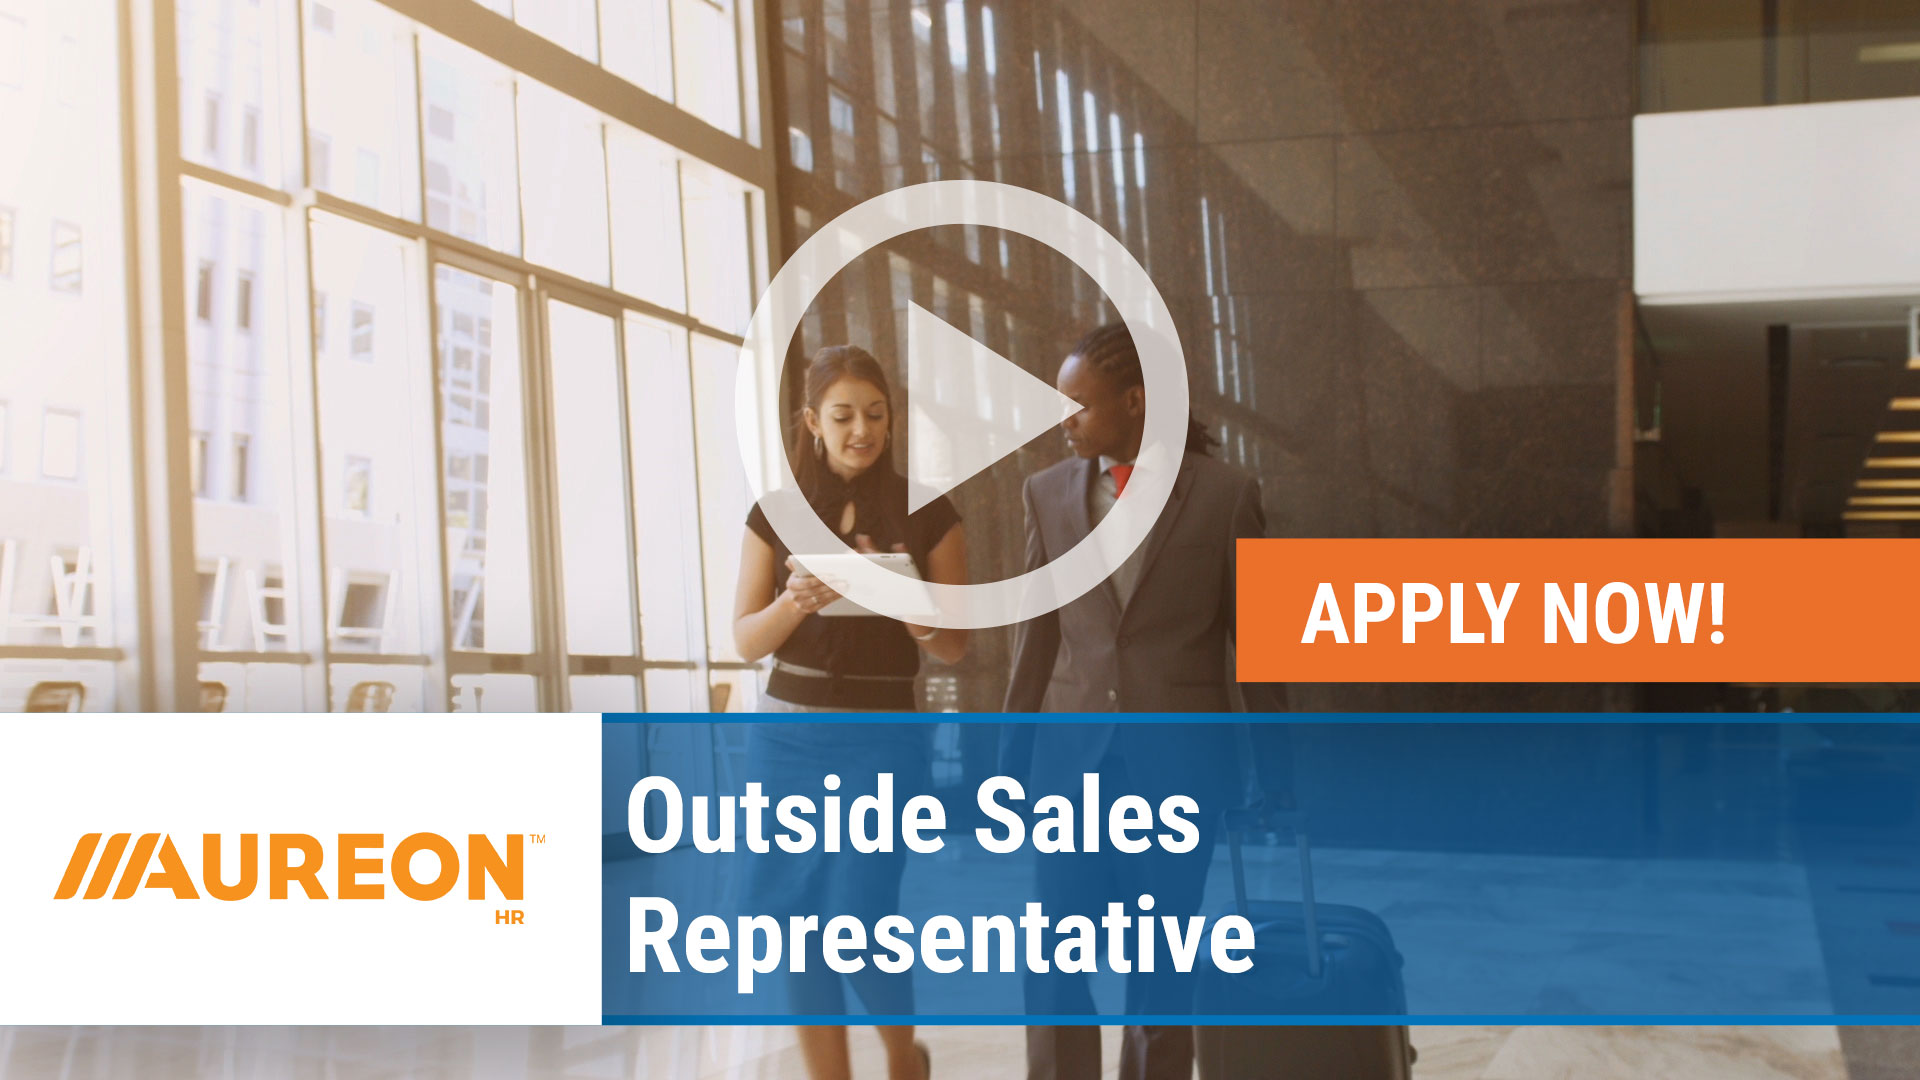 Watch our careers video for available job opening Outside Sales Representative in Des Moines Suburb, Iowa